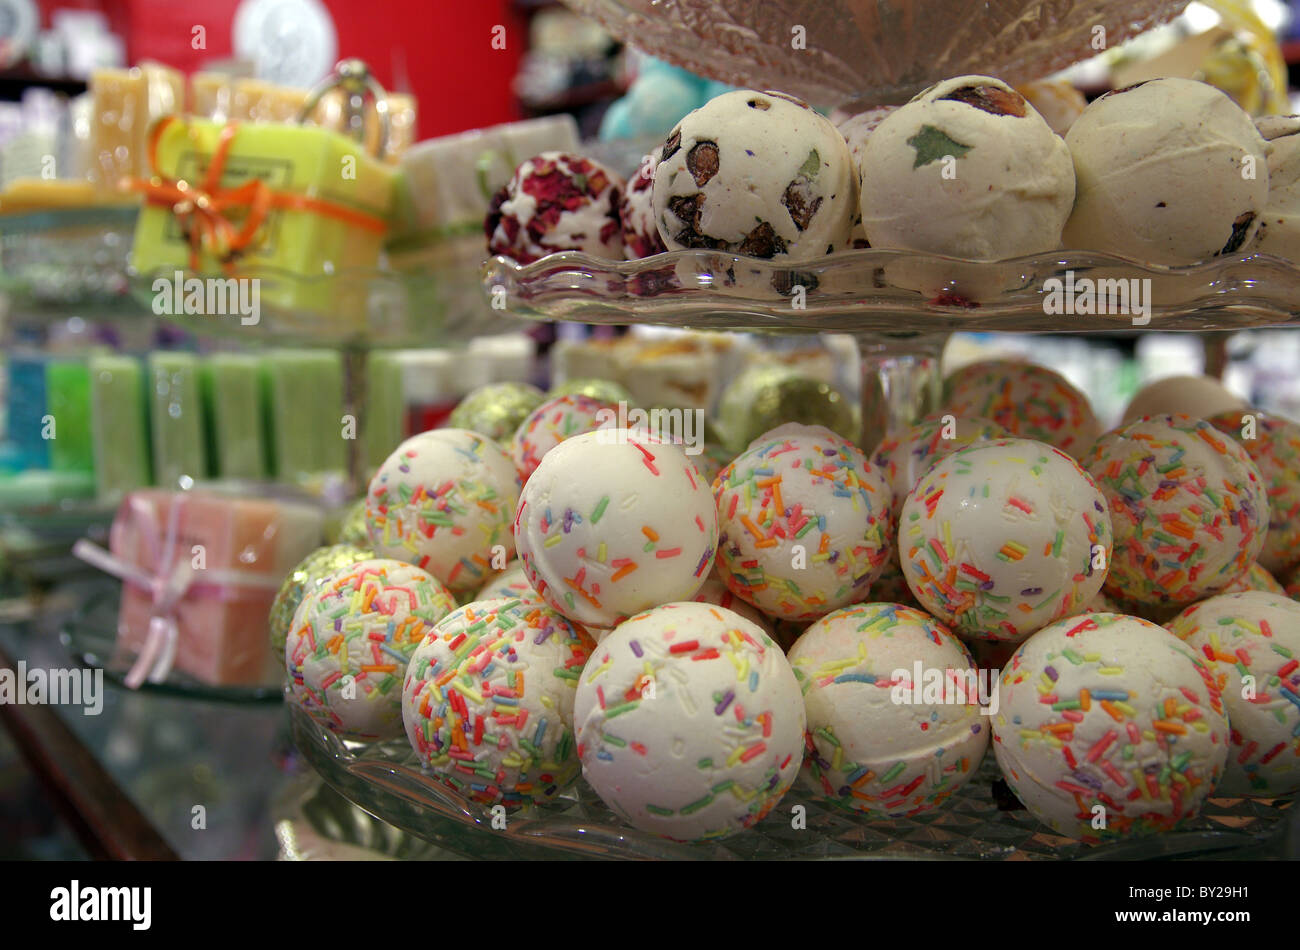 Bath bombs on display in a shop - Stock Image